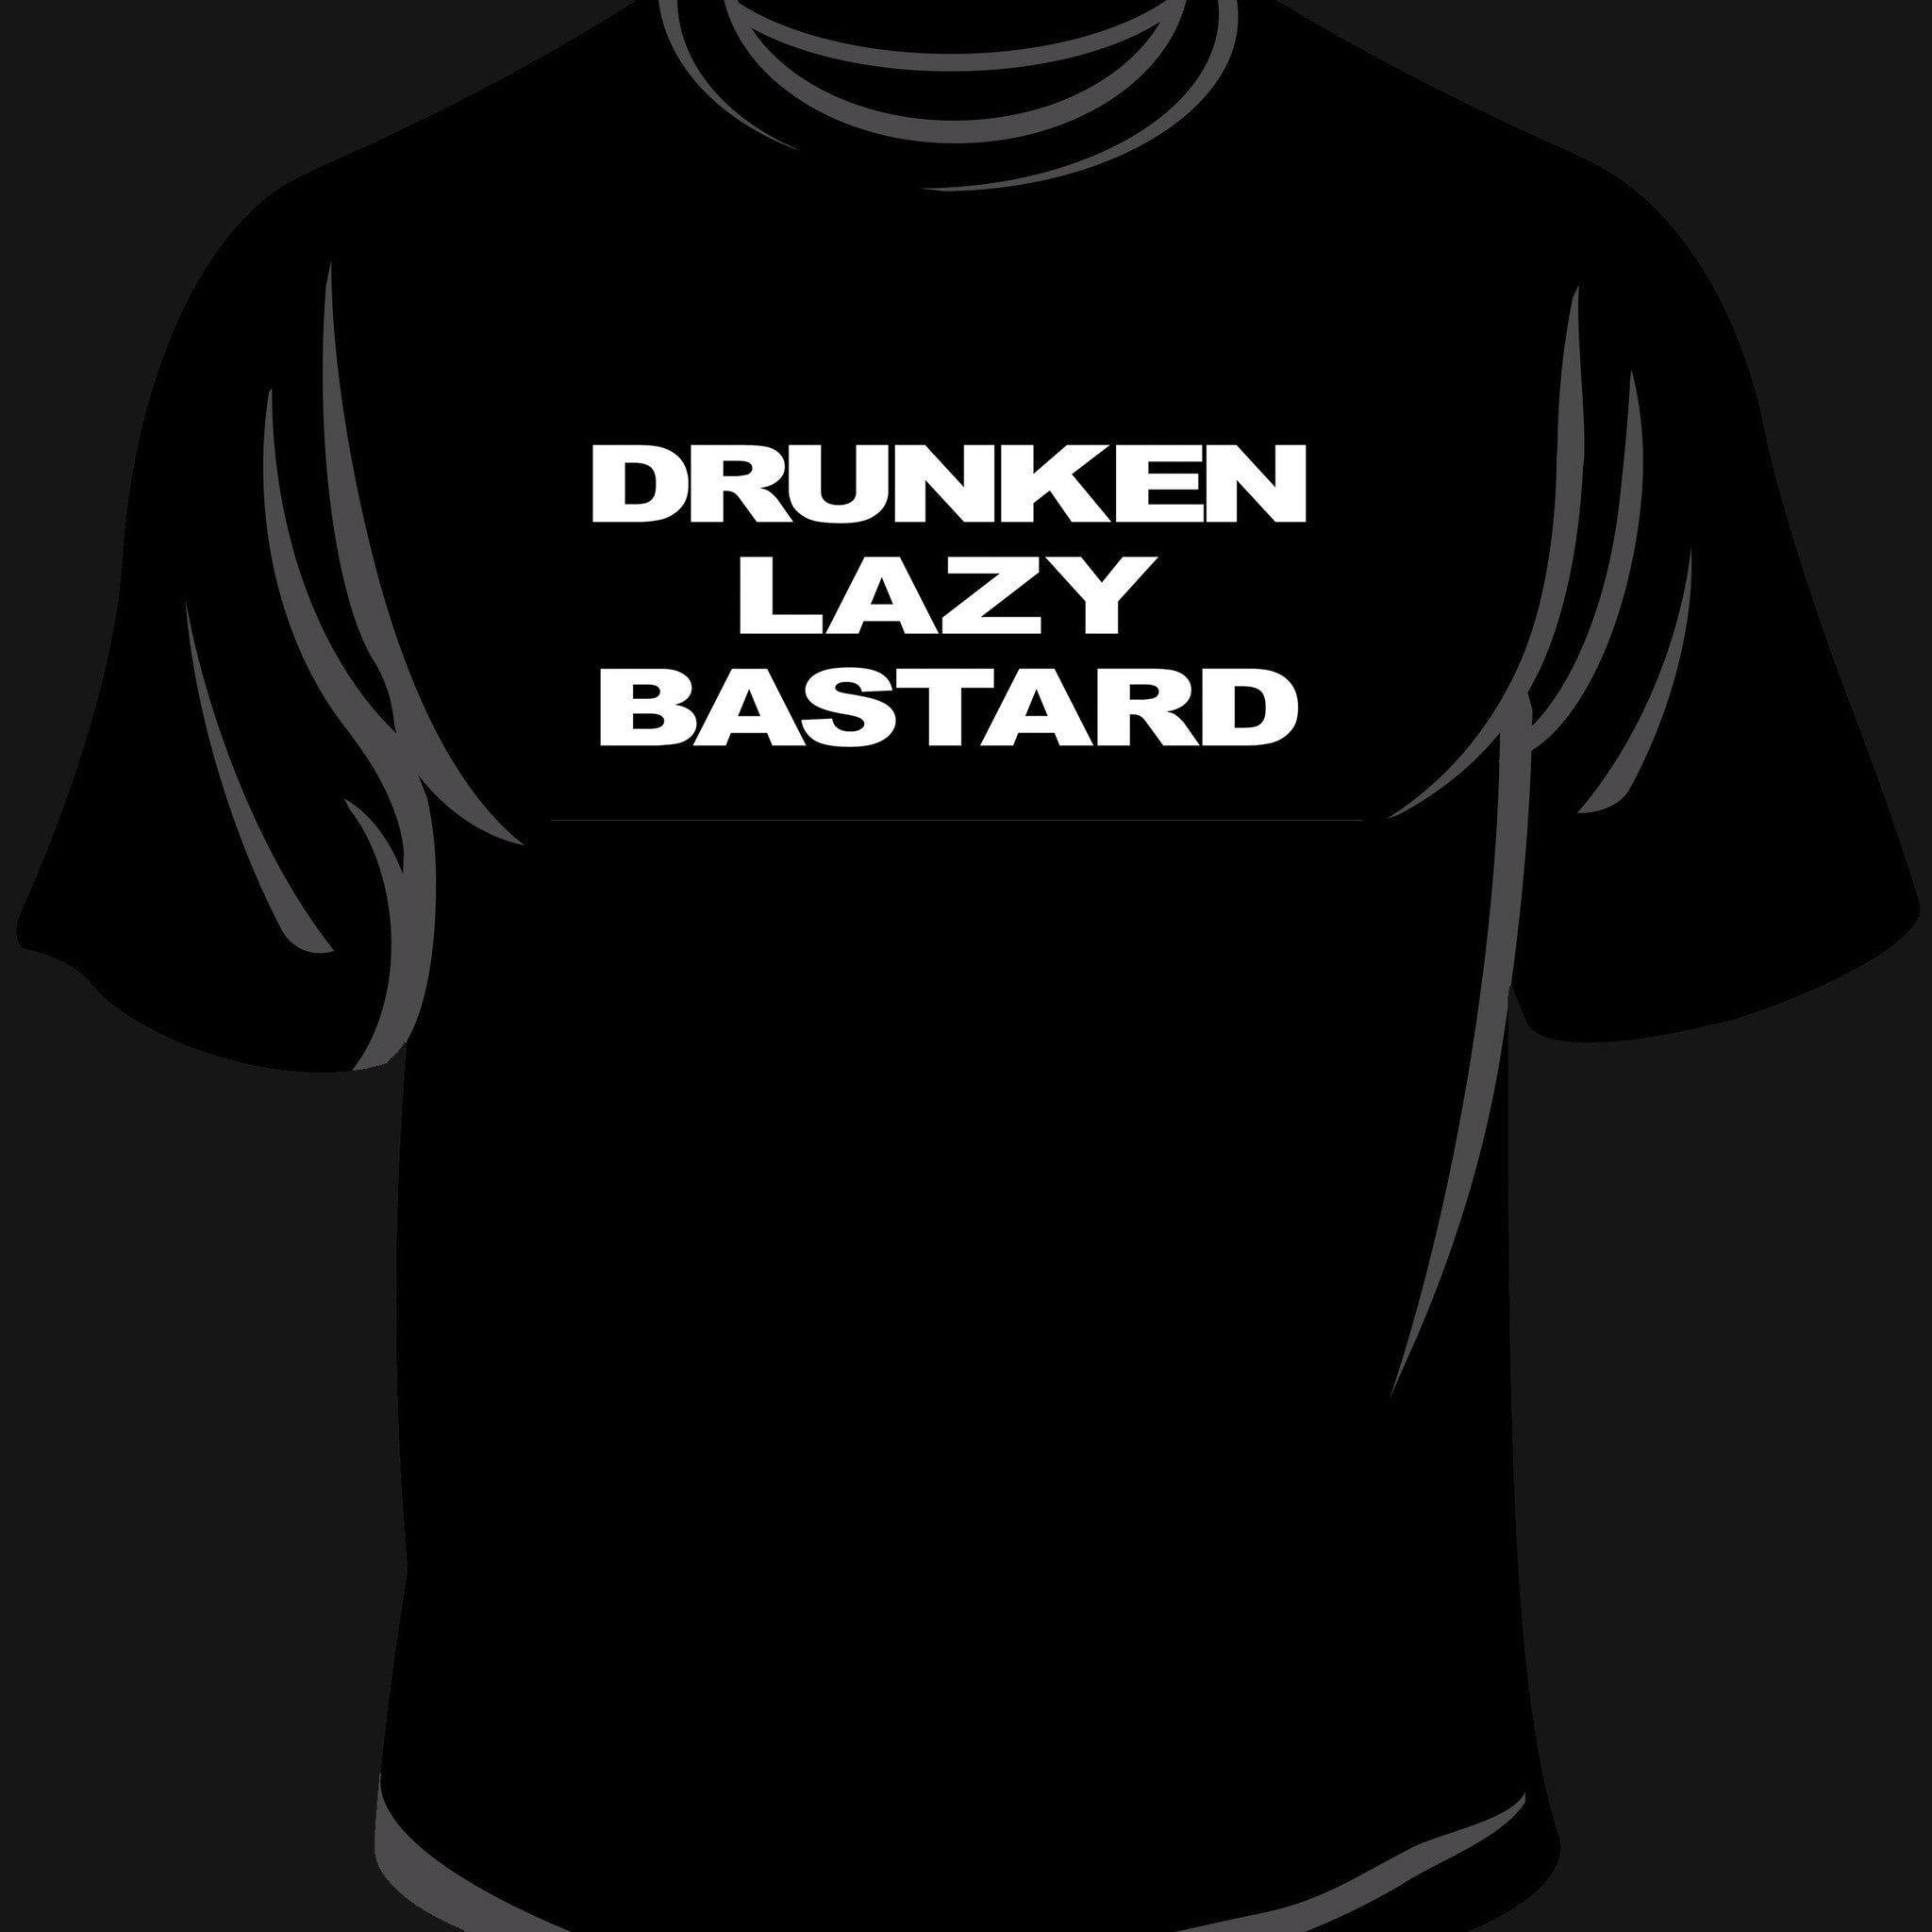 Drunken Lazy Bastard Shirt